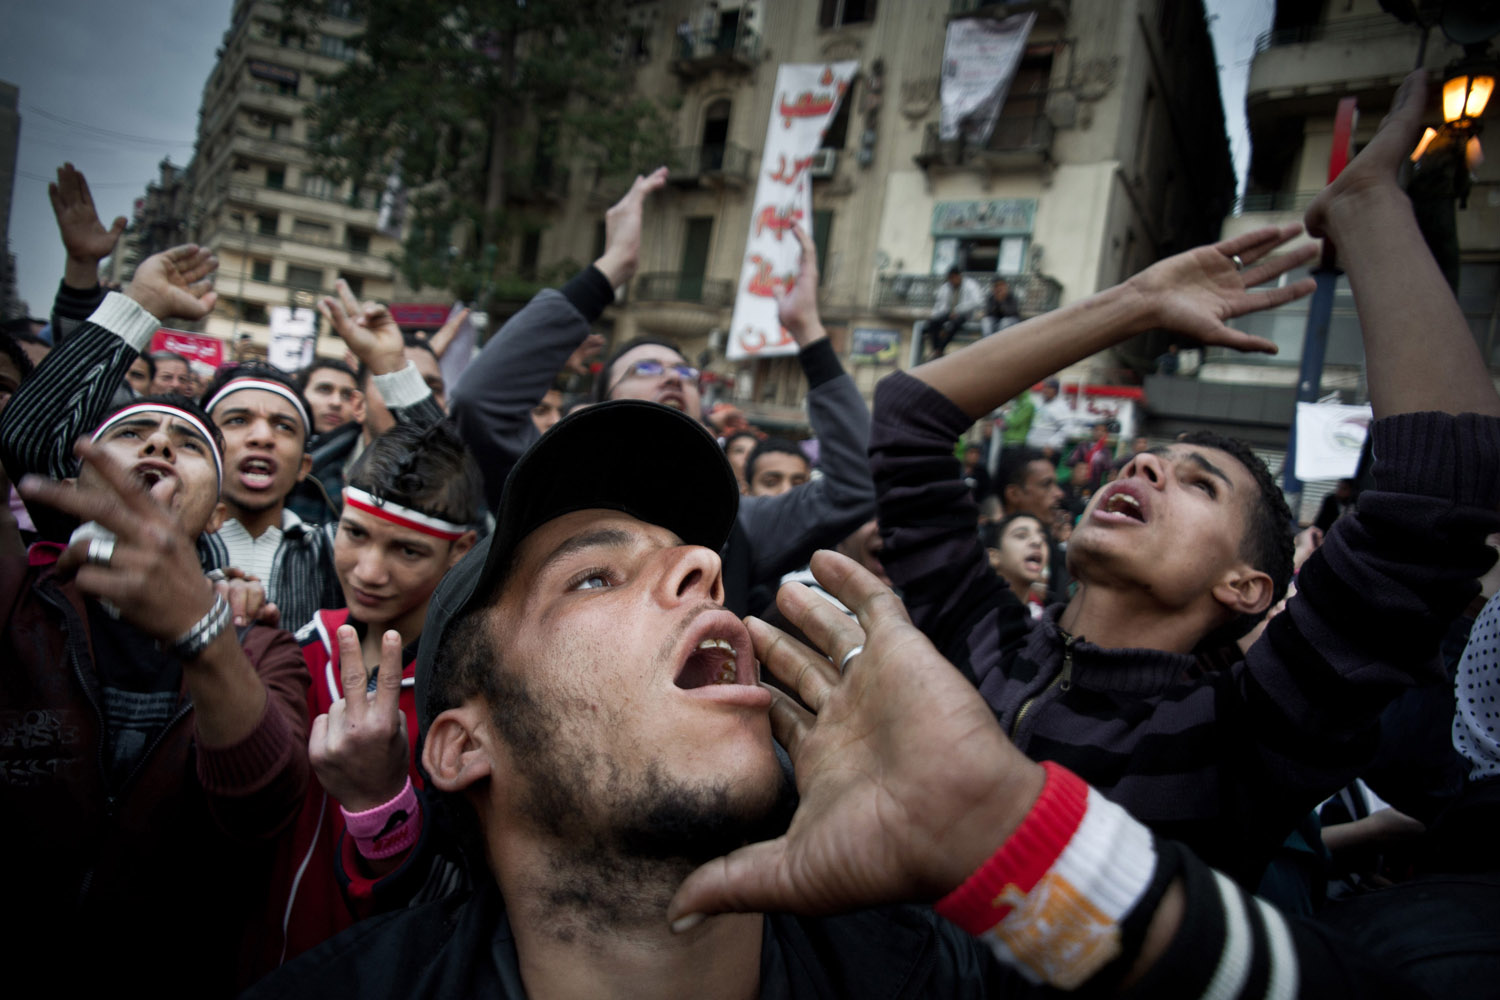 Nov. 27, 2011. Protesters shout slogans during a demonstration against the Egyptian military council in Cairo.